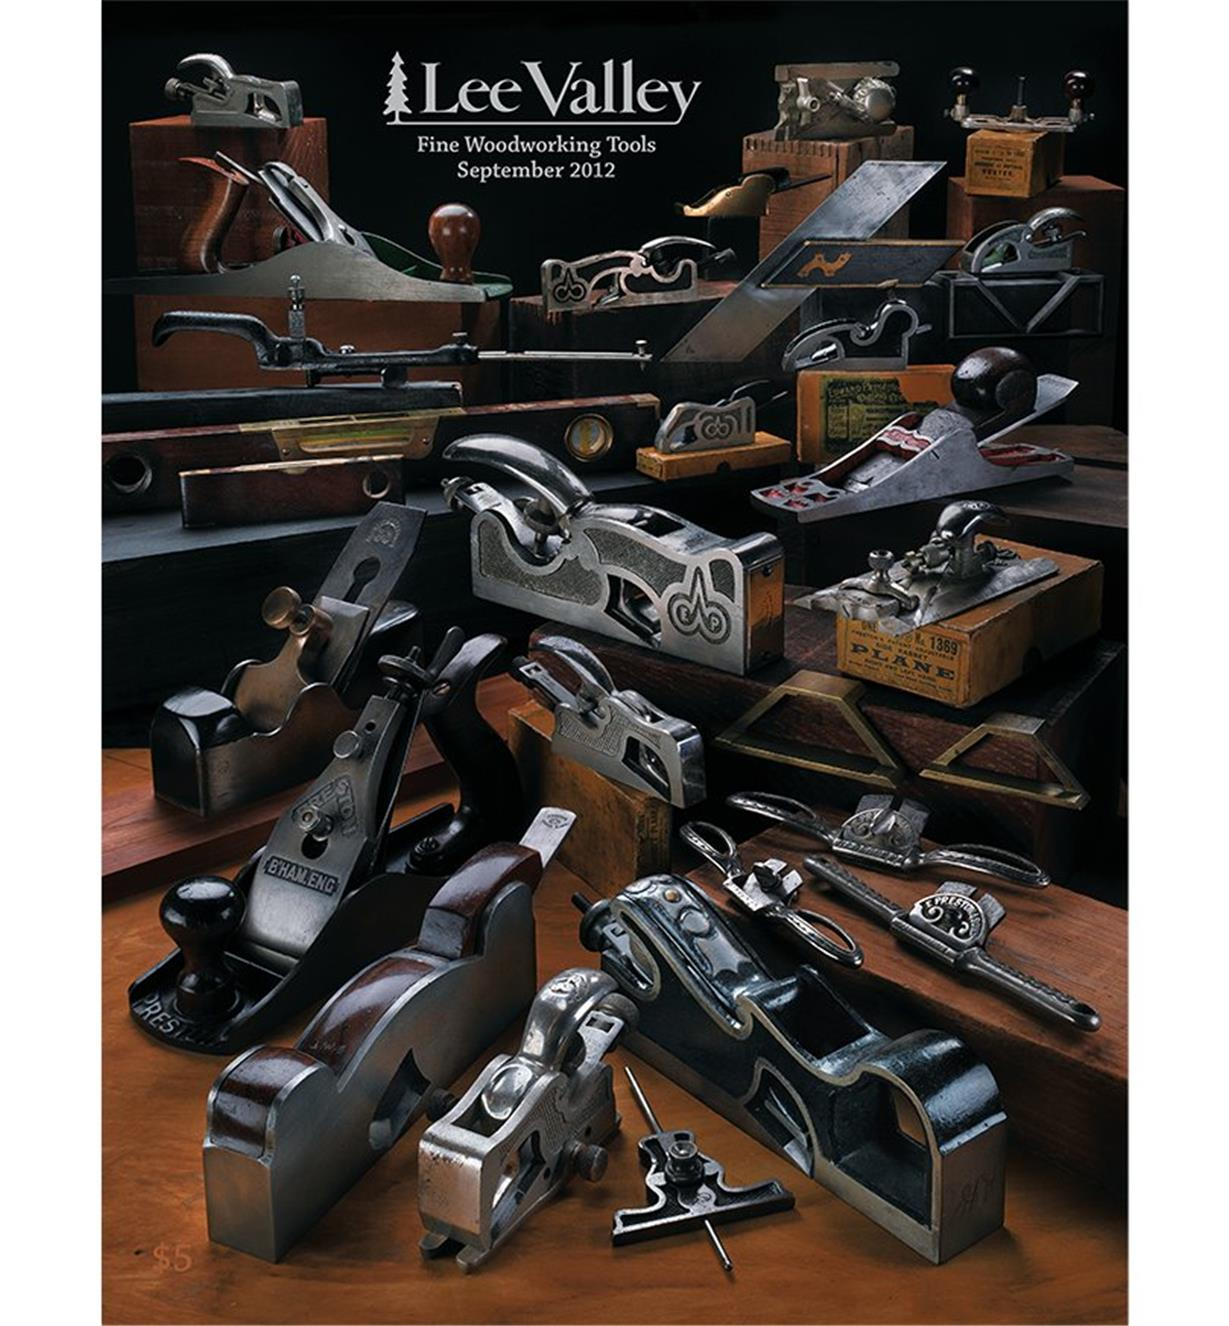 CW0913 - Fine Woodworking Tools, September 2012, Canada